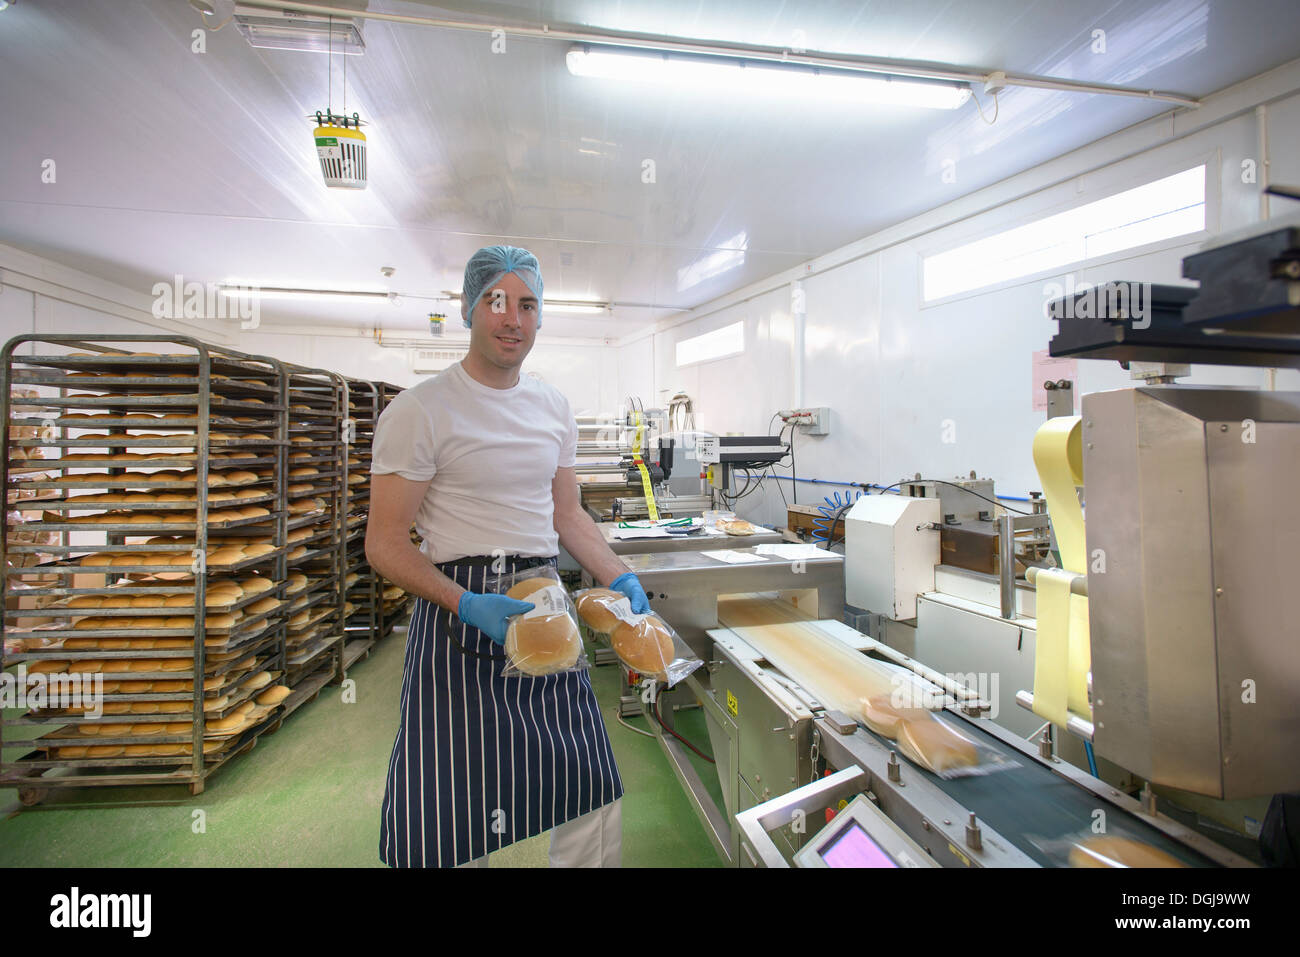 Baker on bread packing production line, portrait - Stock Image